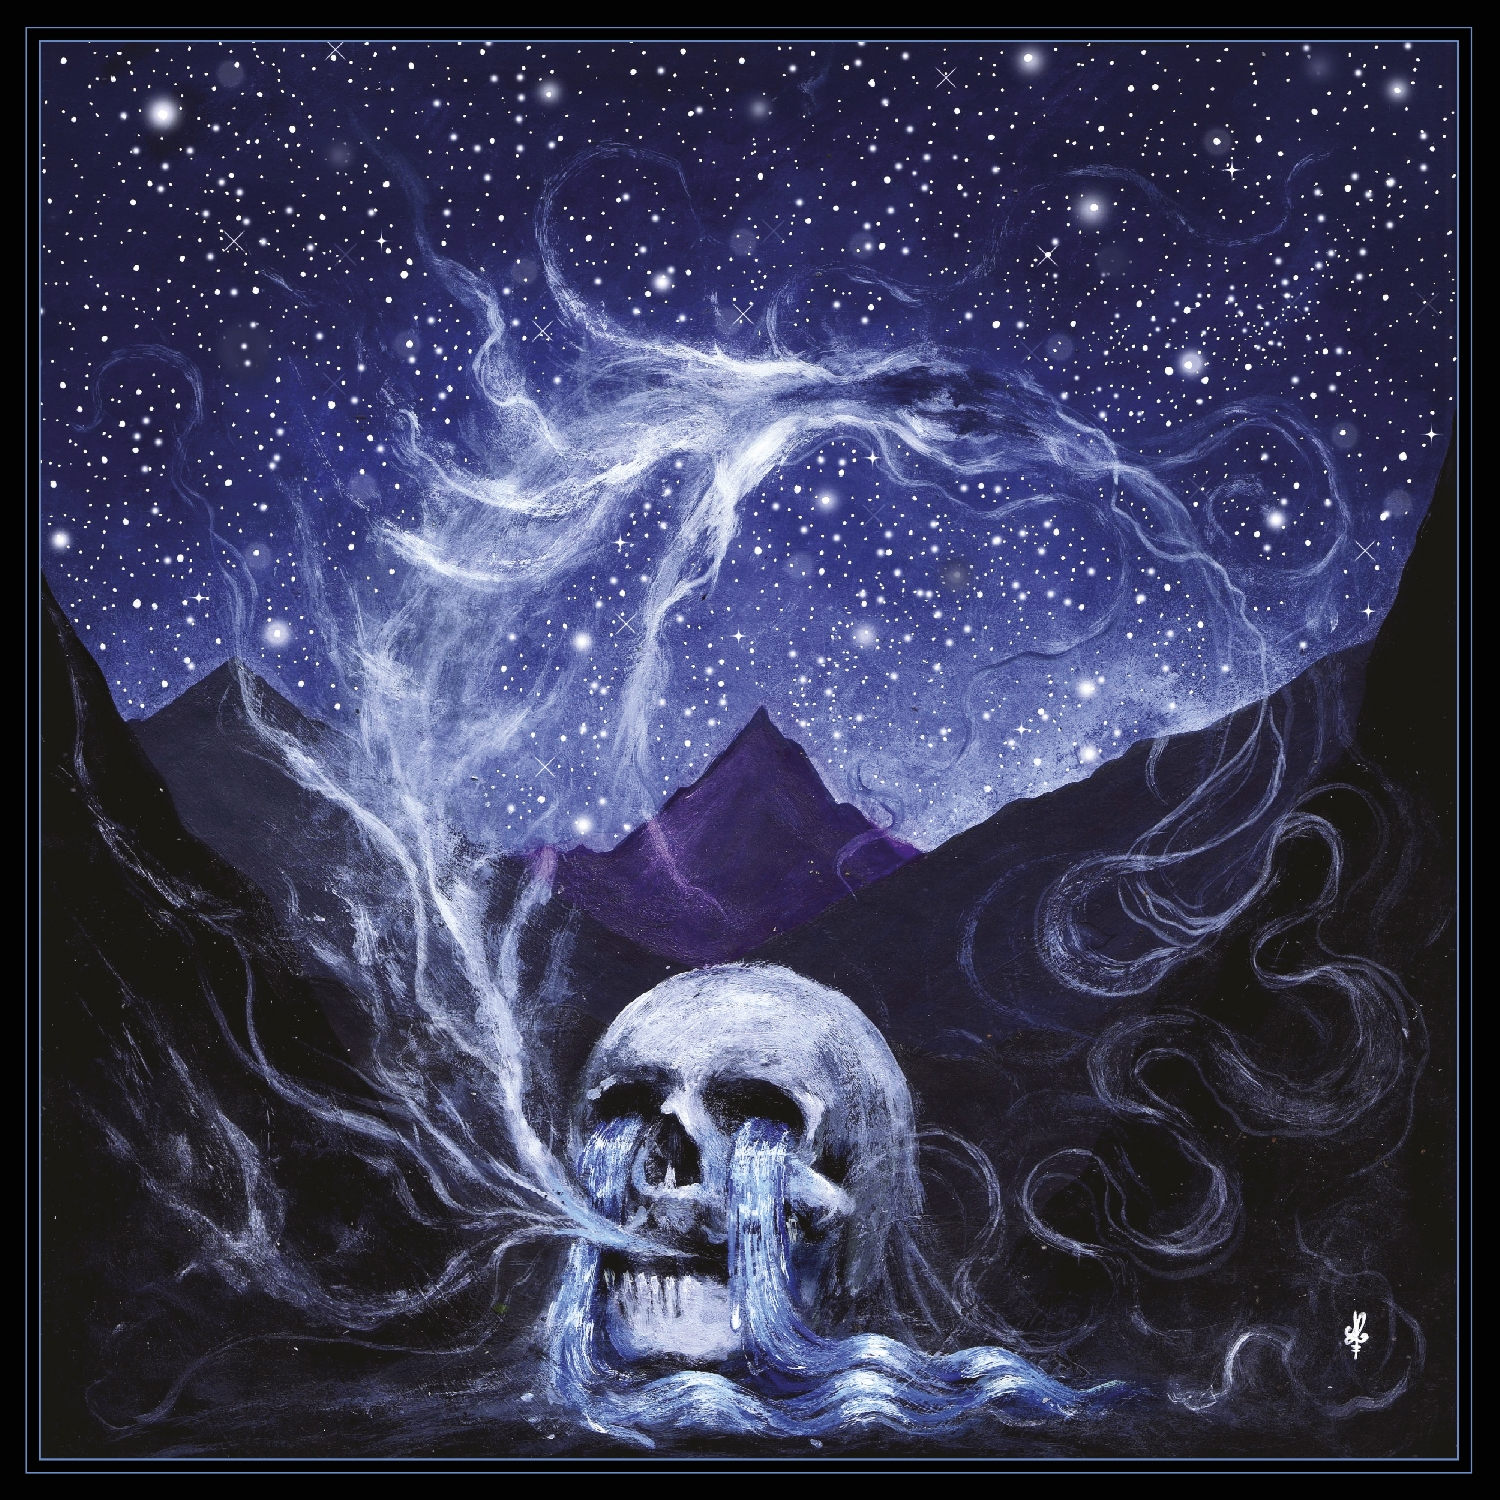 Ghost Bath - Starmourner - Artwork